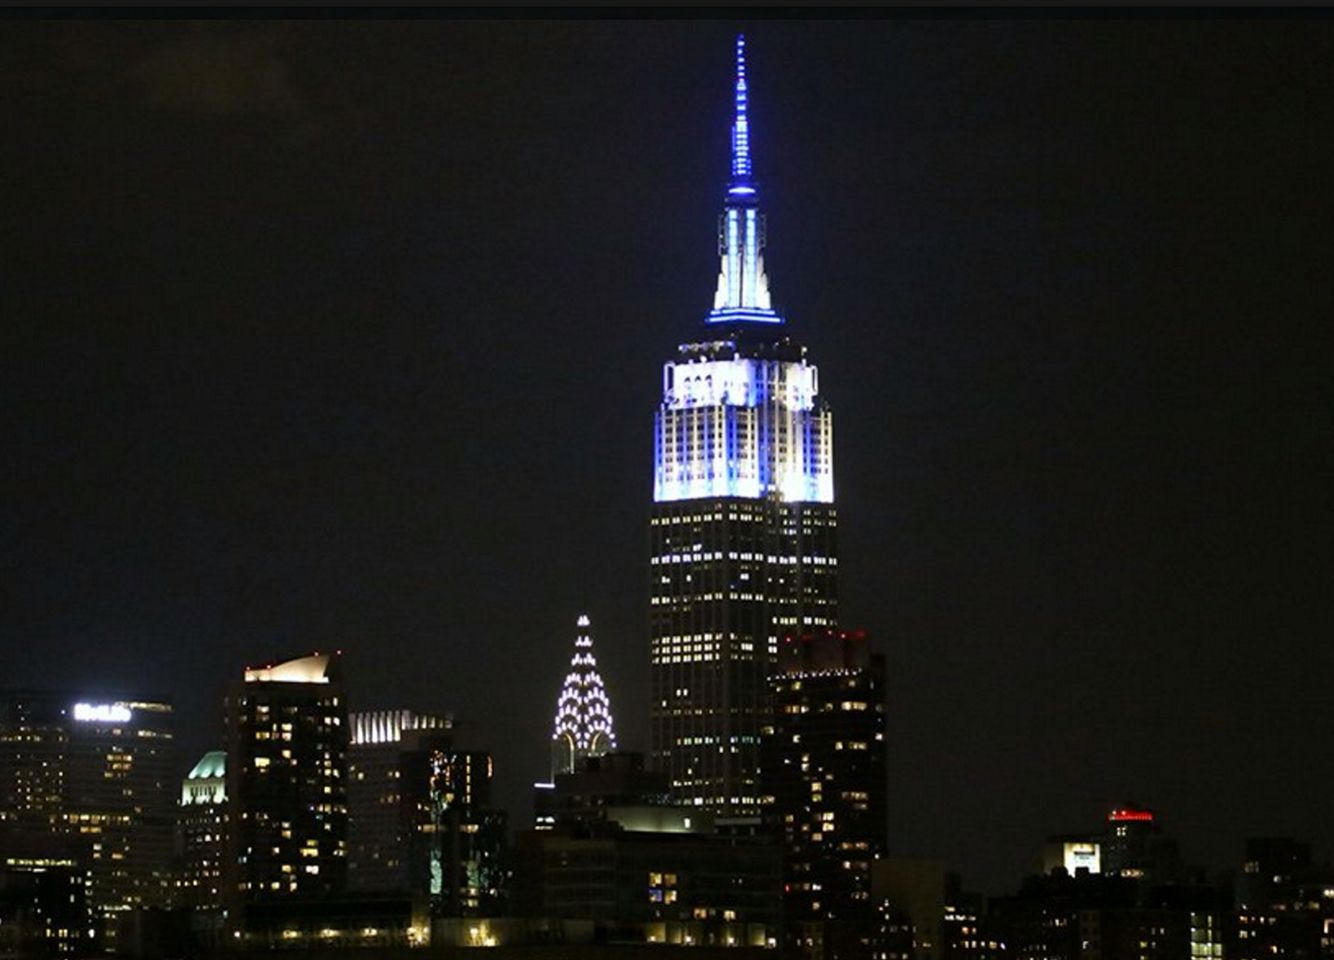 August 3 2016 The Empire State Building Honors The Yankeesbaseball Subway Series Game 3 Victory With Yankees Pinstripes Photo By Arturo P New York